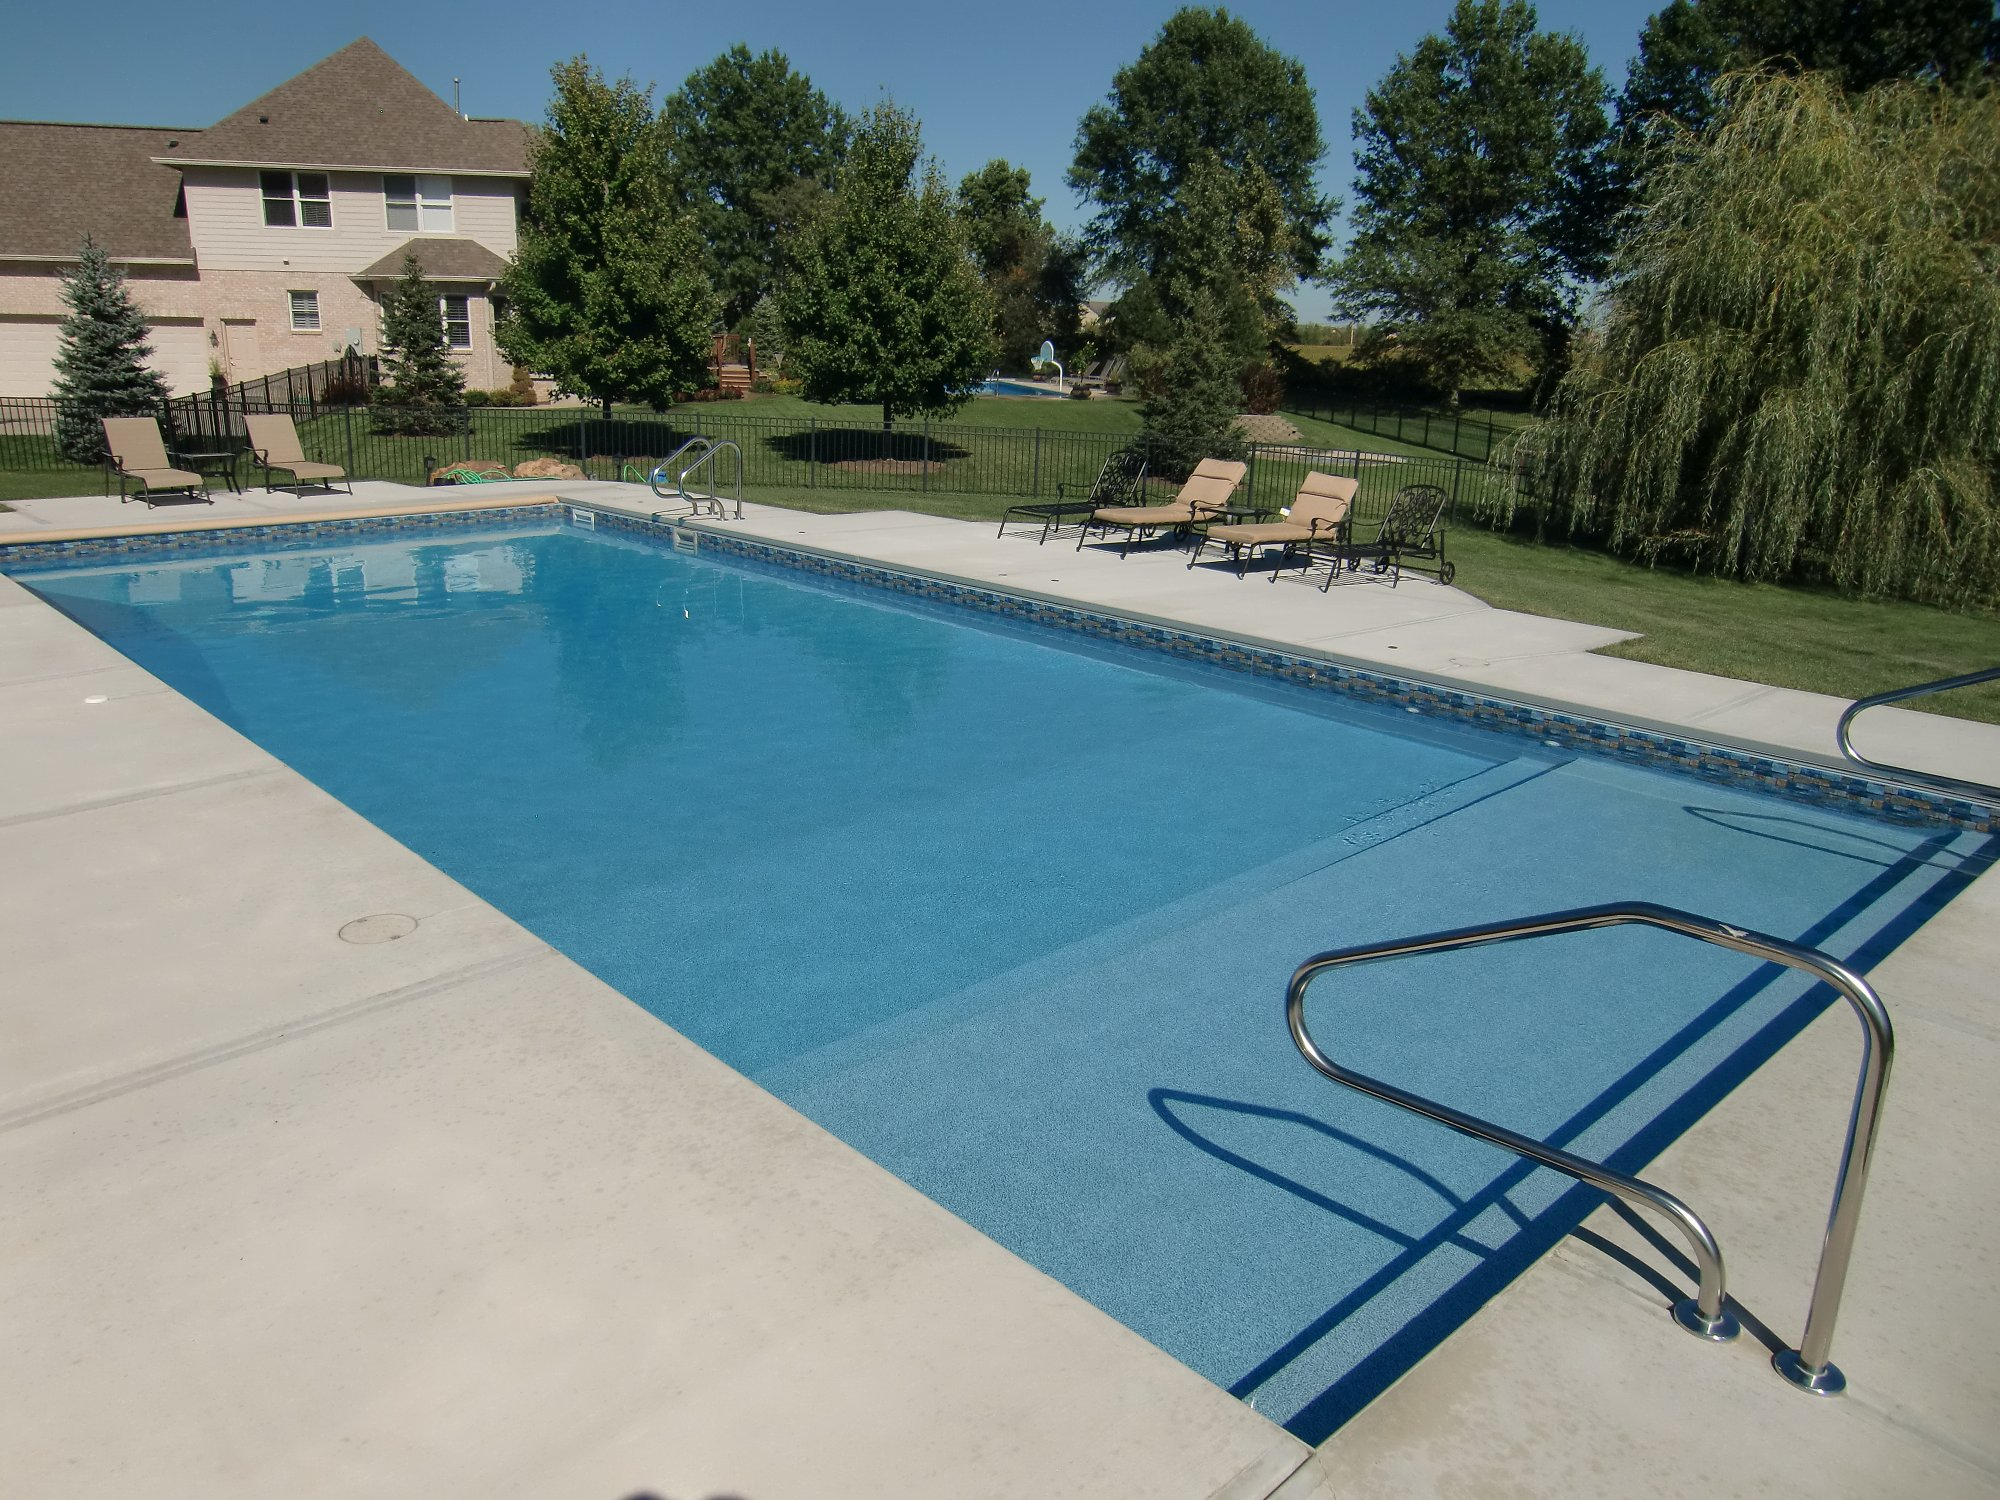 Picture of vinyl liner pools for A rectangular swimming pool is 6 ft deep